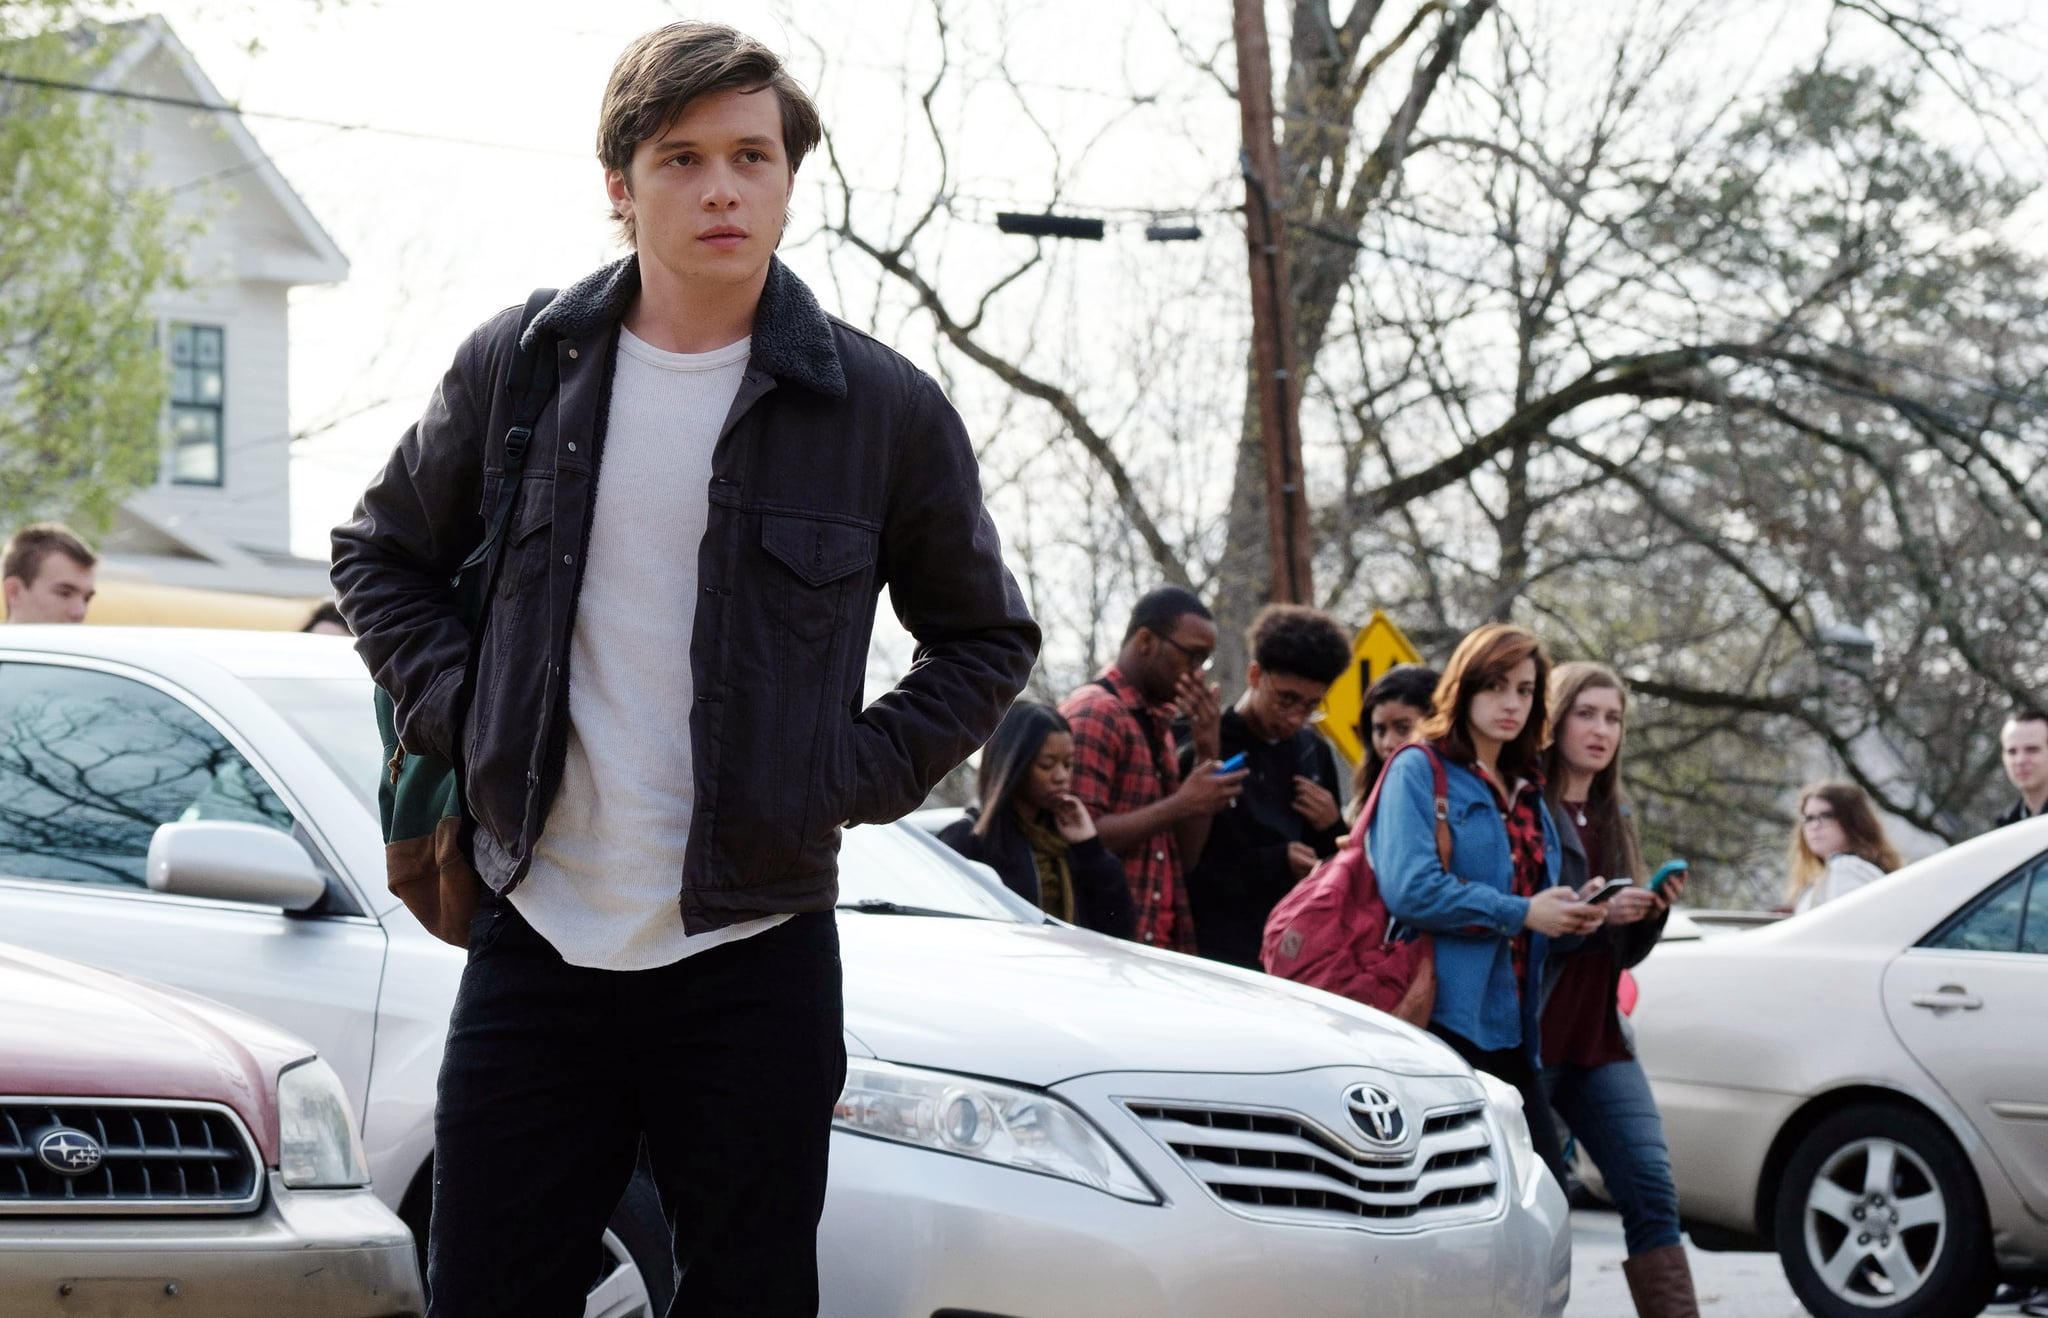 LOVE, SIMON, Nick Robinson, 2018. ph: Ben Rothstein /TM & copyright  Twentieth Century Fox Film Corp. All rights reserved. /Courtesy Everett Collection